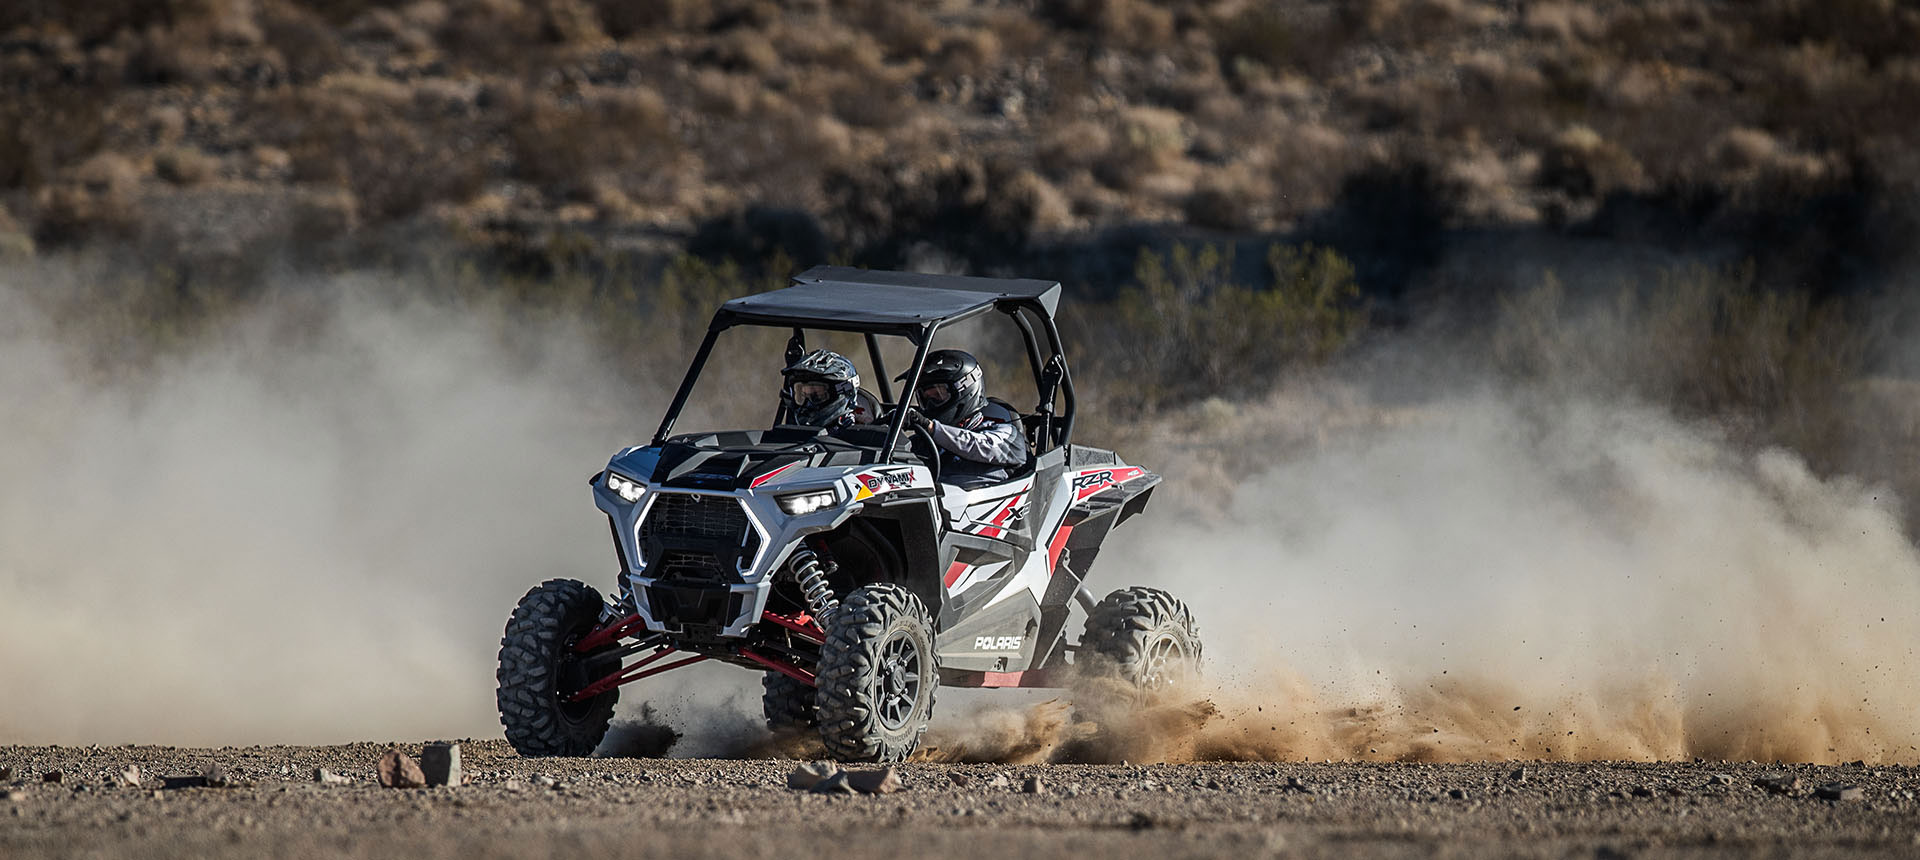 2019 Polaris RZR XP 1000 in Santa Maria, California - Photo 2